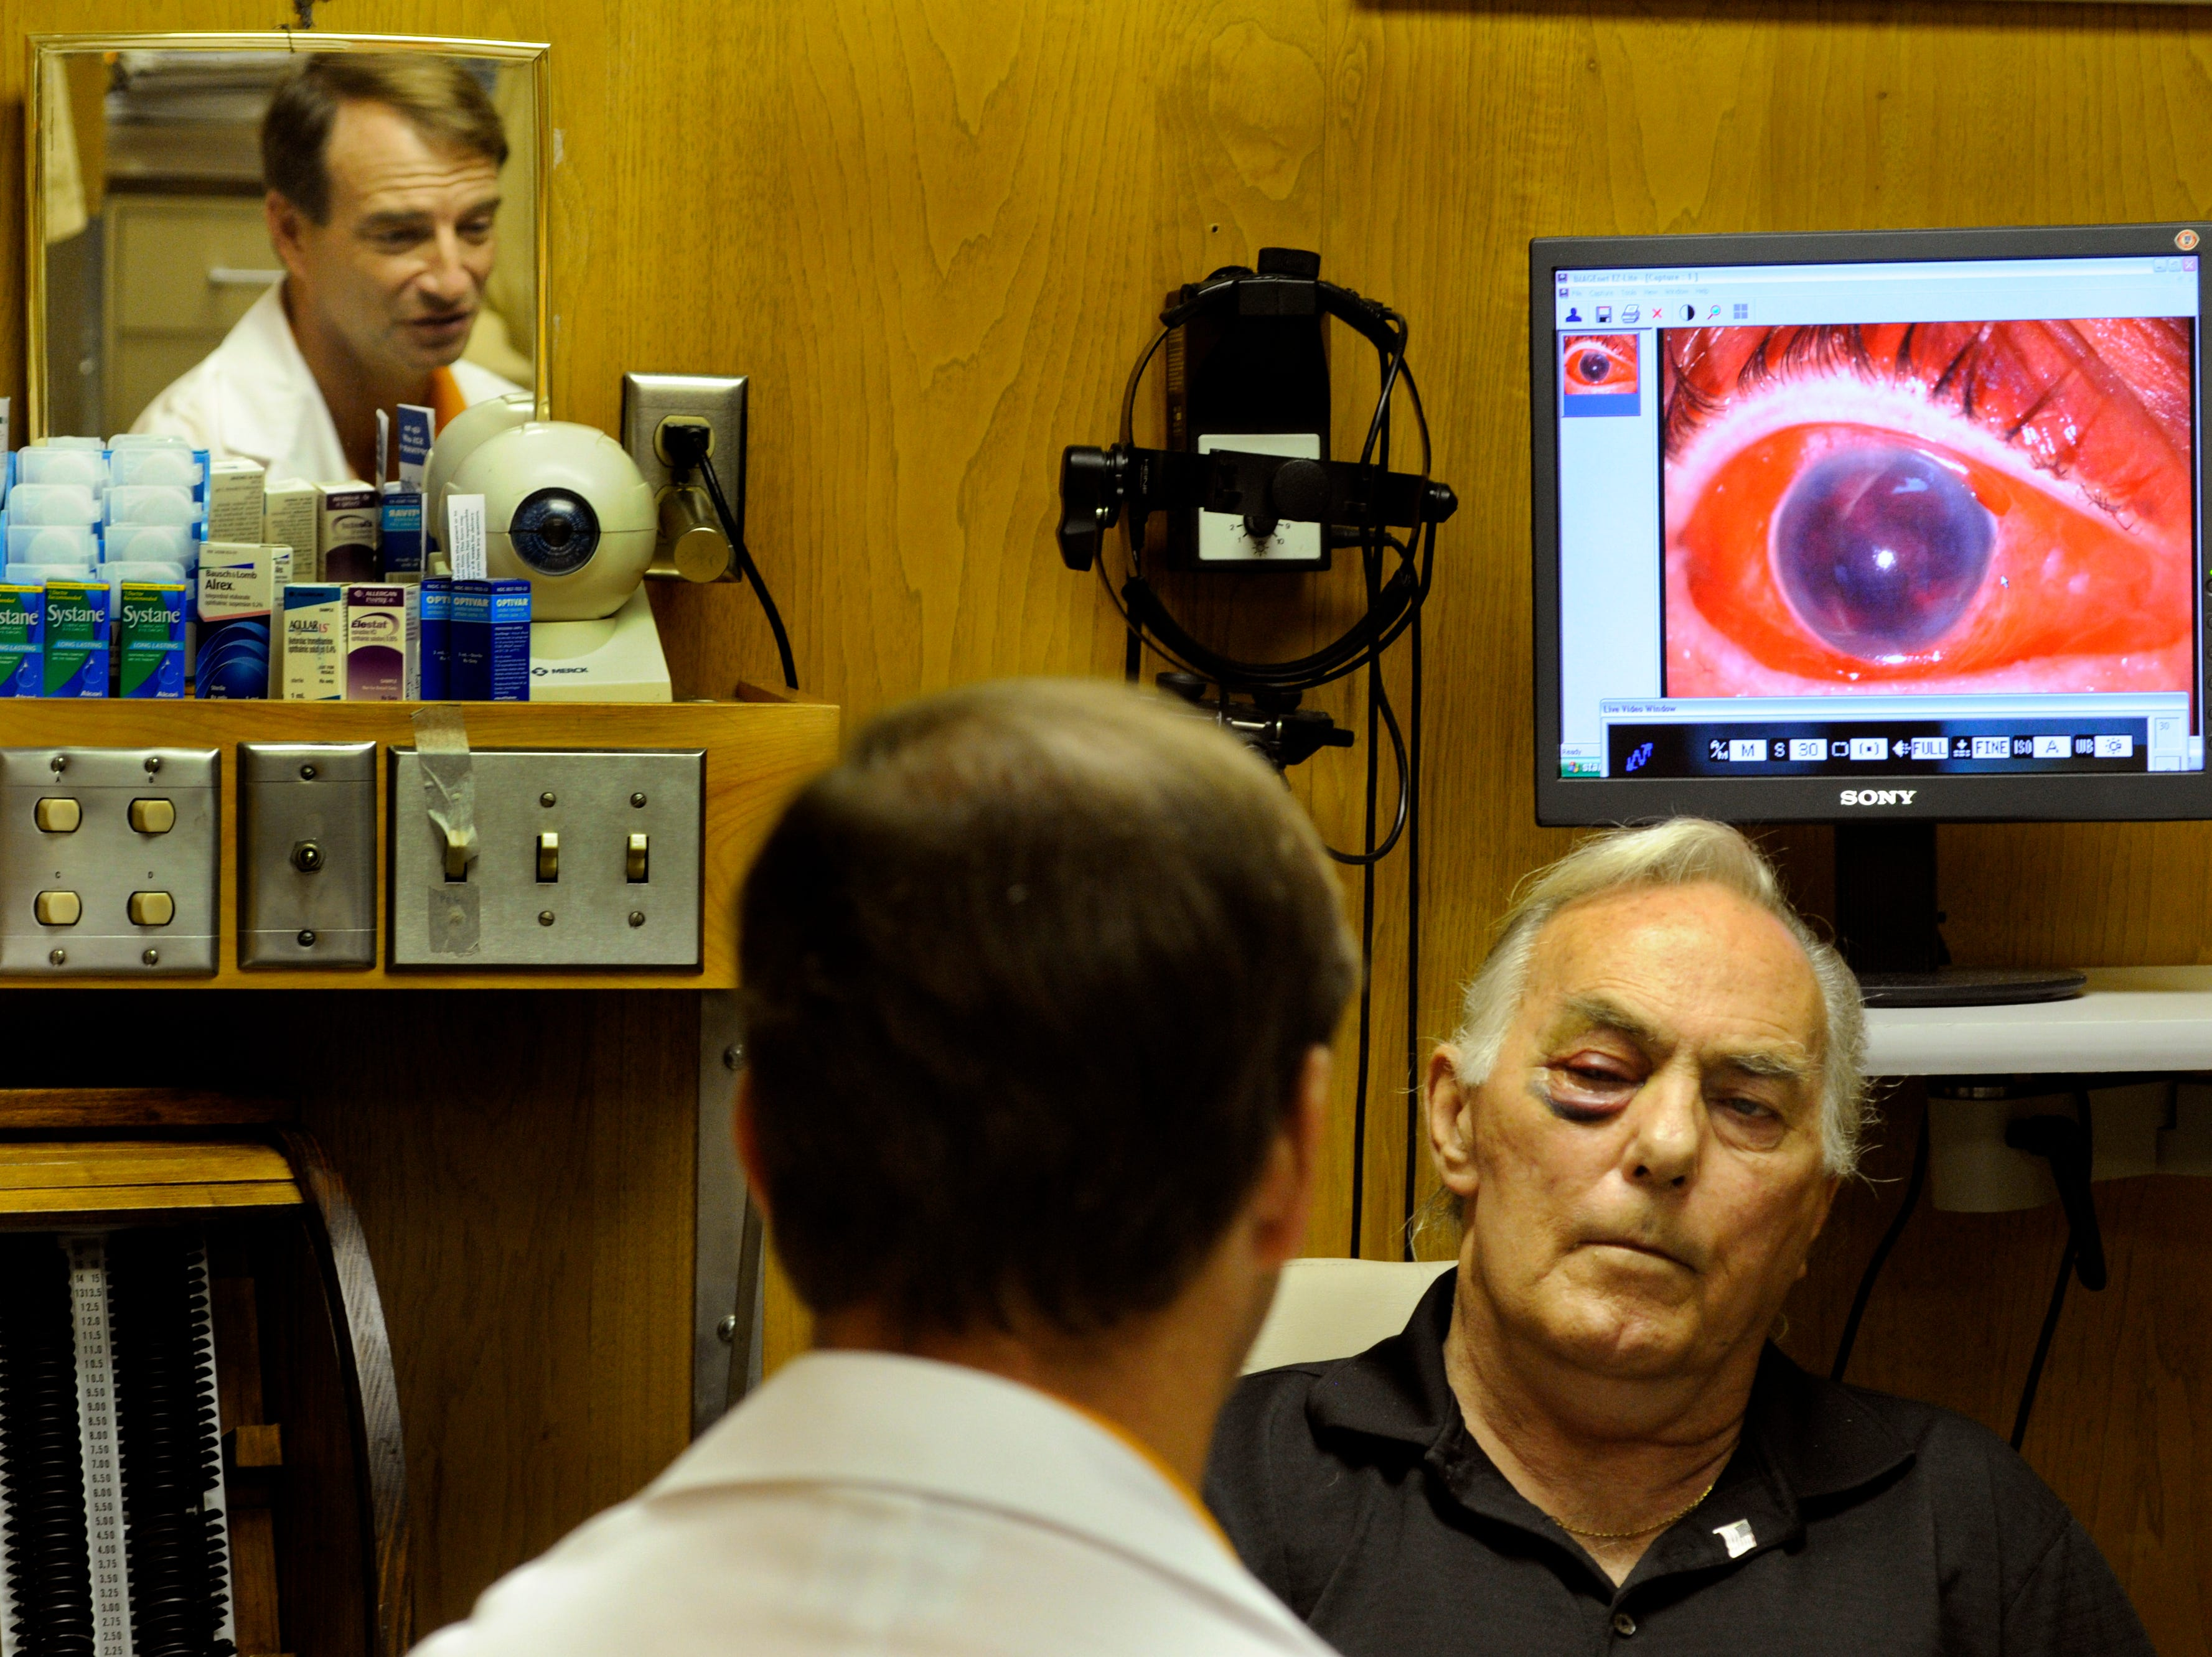 Church shooting victim John T. Worth, right, has his wounded eye examined by Dr. David Harris, Jr., Wednesday at UT Professional Building. Worth, one of the victims at Tennessee Valley Unitarian Universalist Church, had a shotgun pellet strike his right eye. Harris told Worth that it was very unlikely he would regain use of the eye.